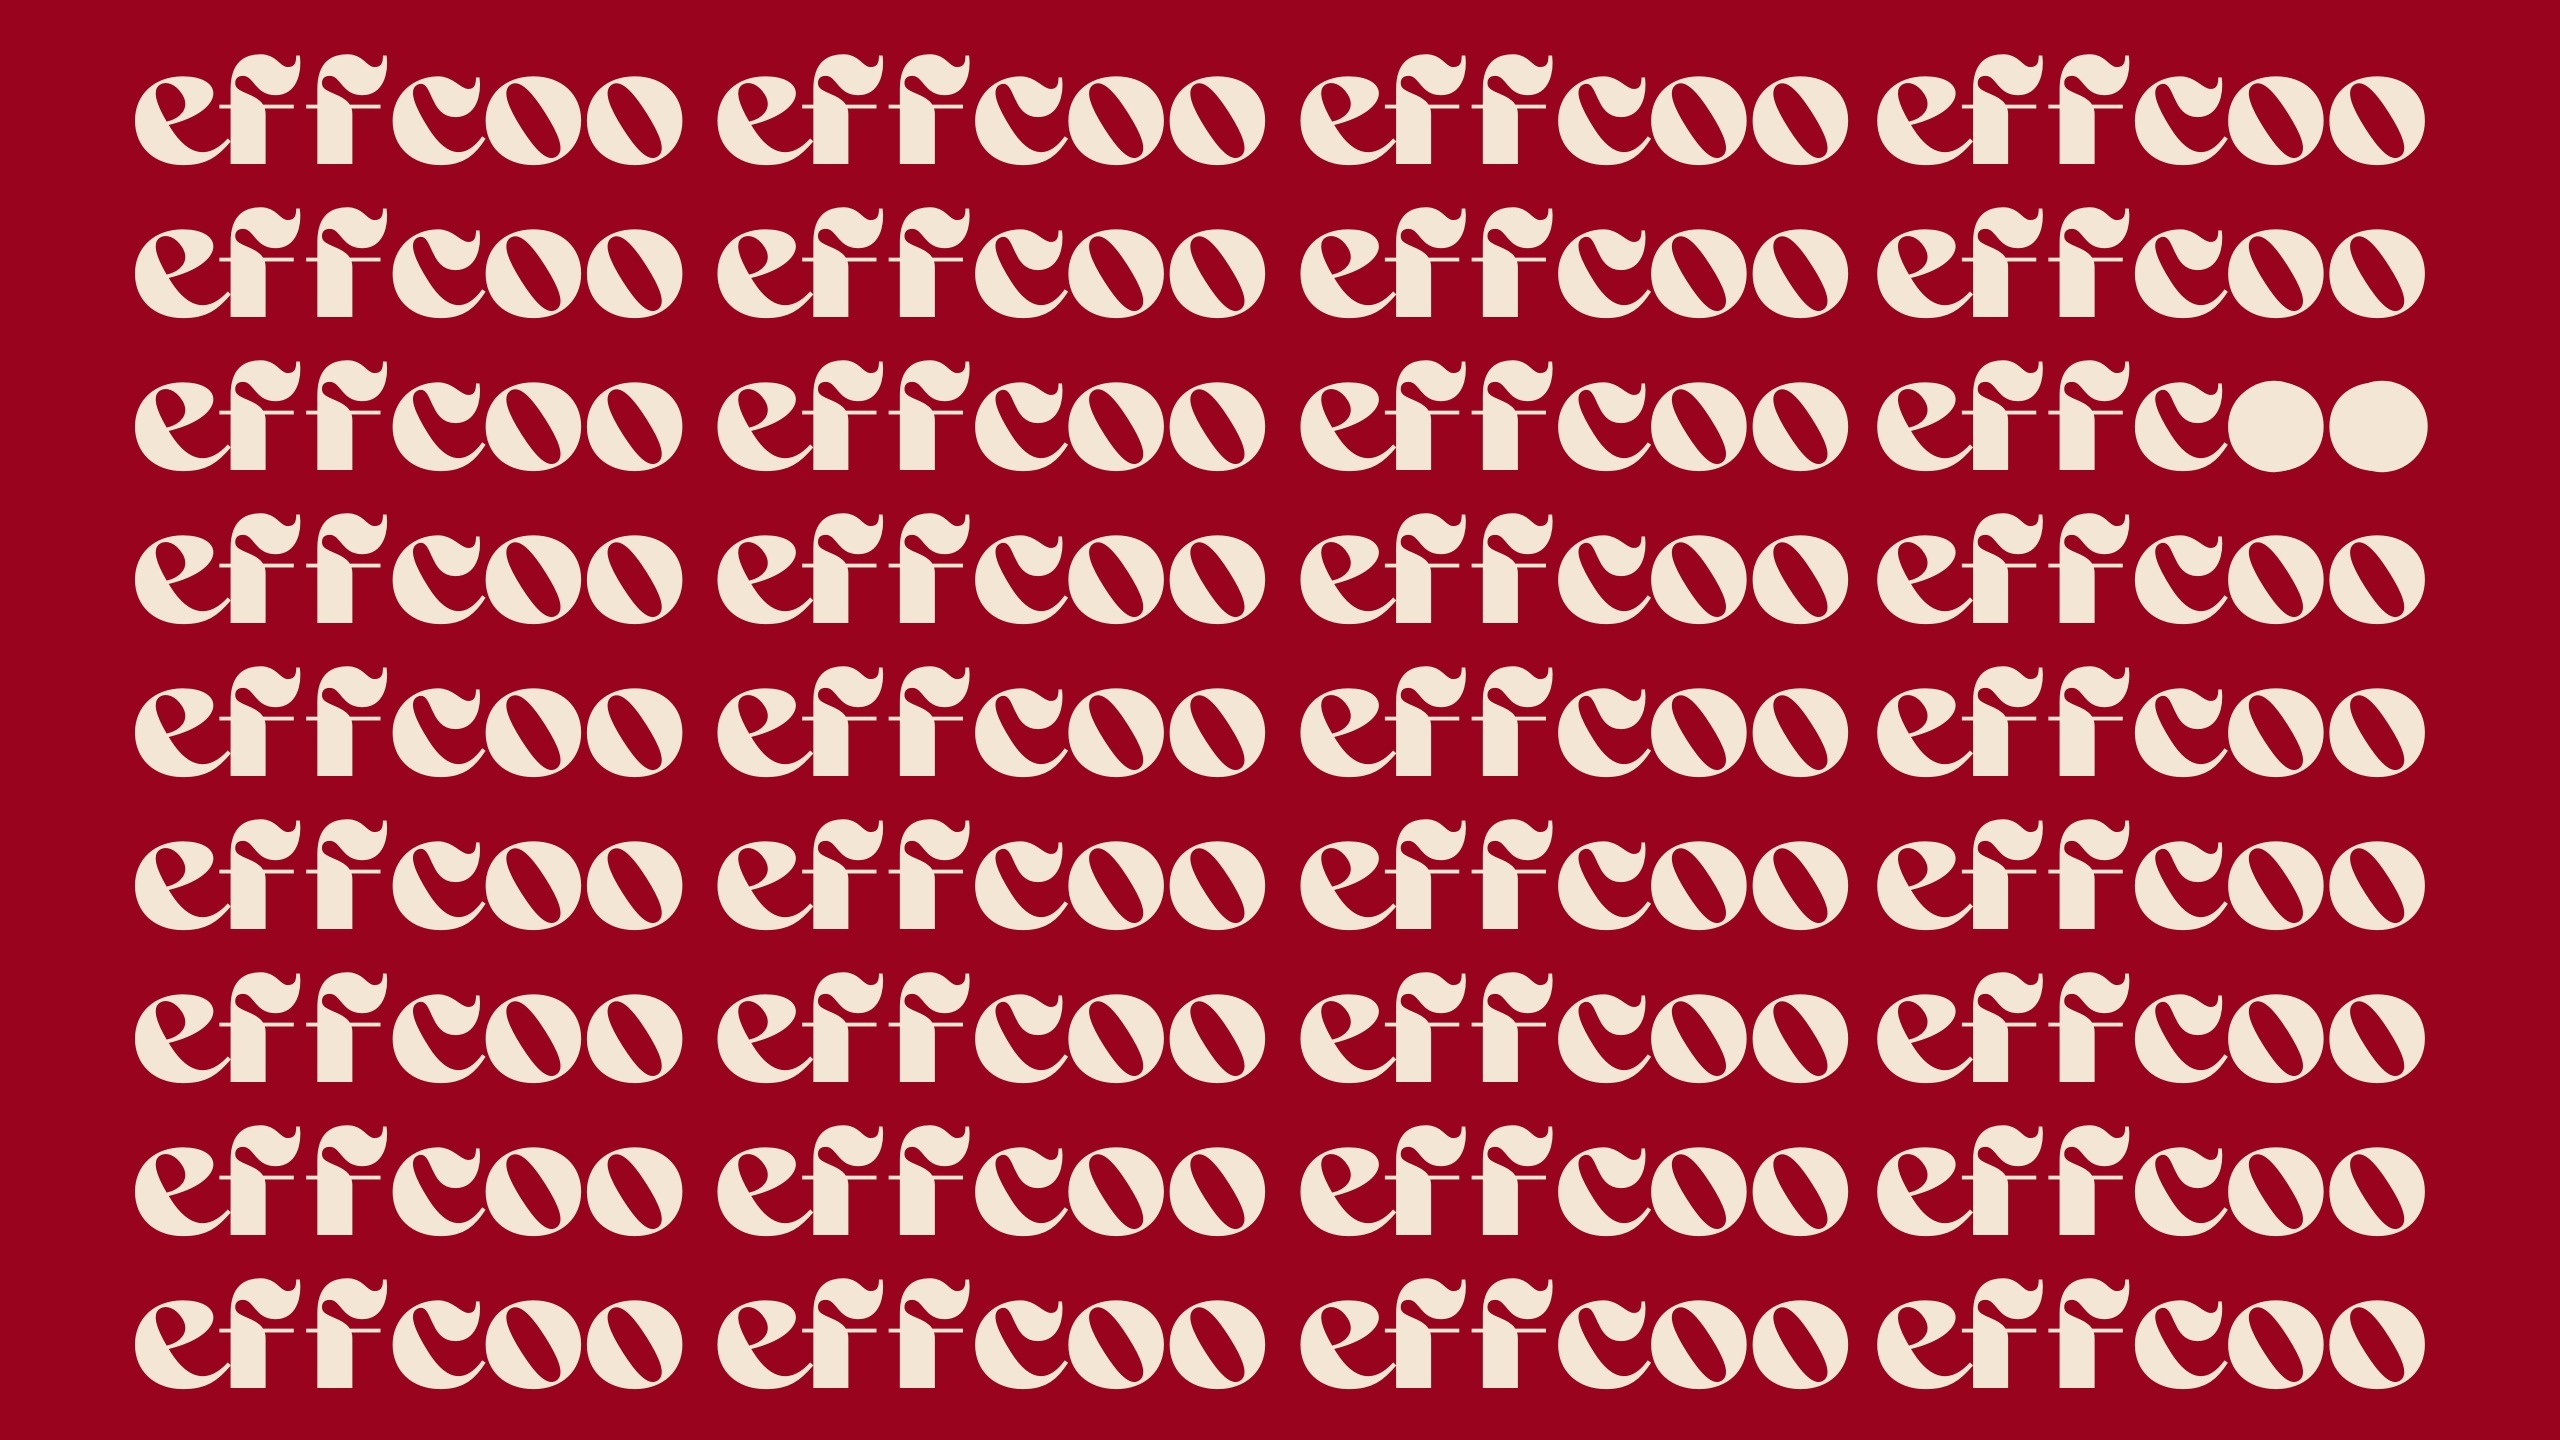 (@effcoo) Cover Image